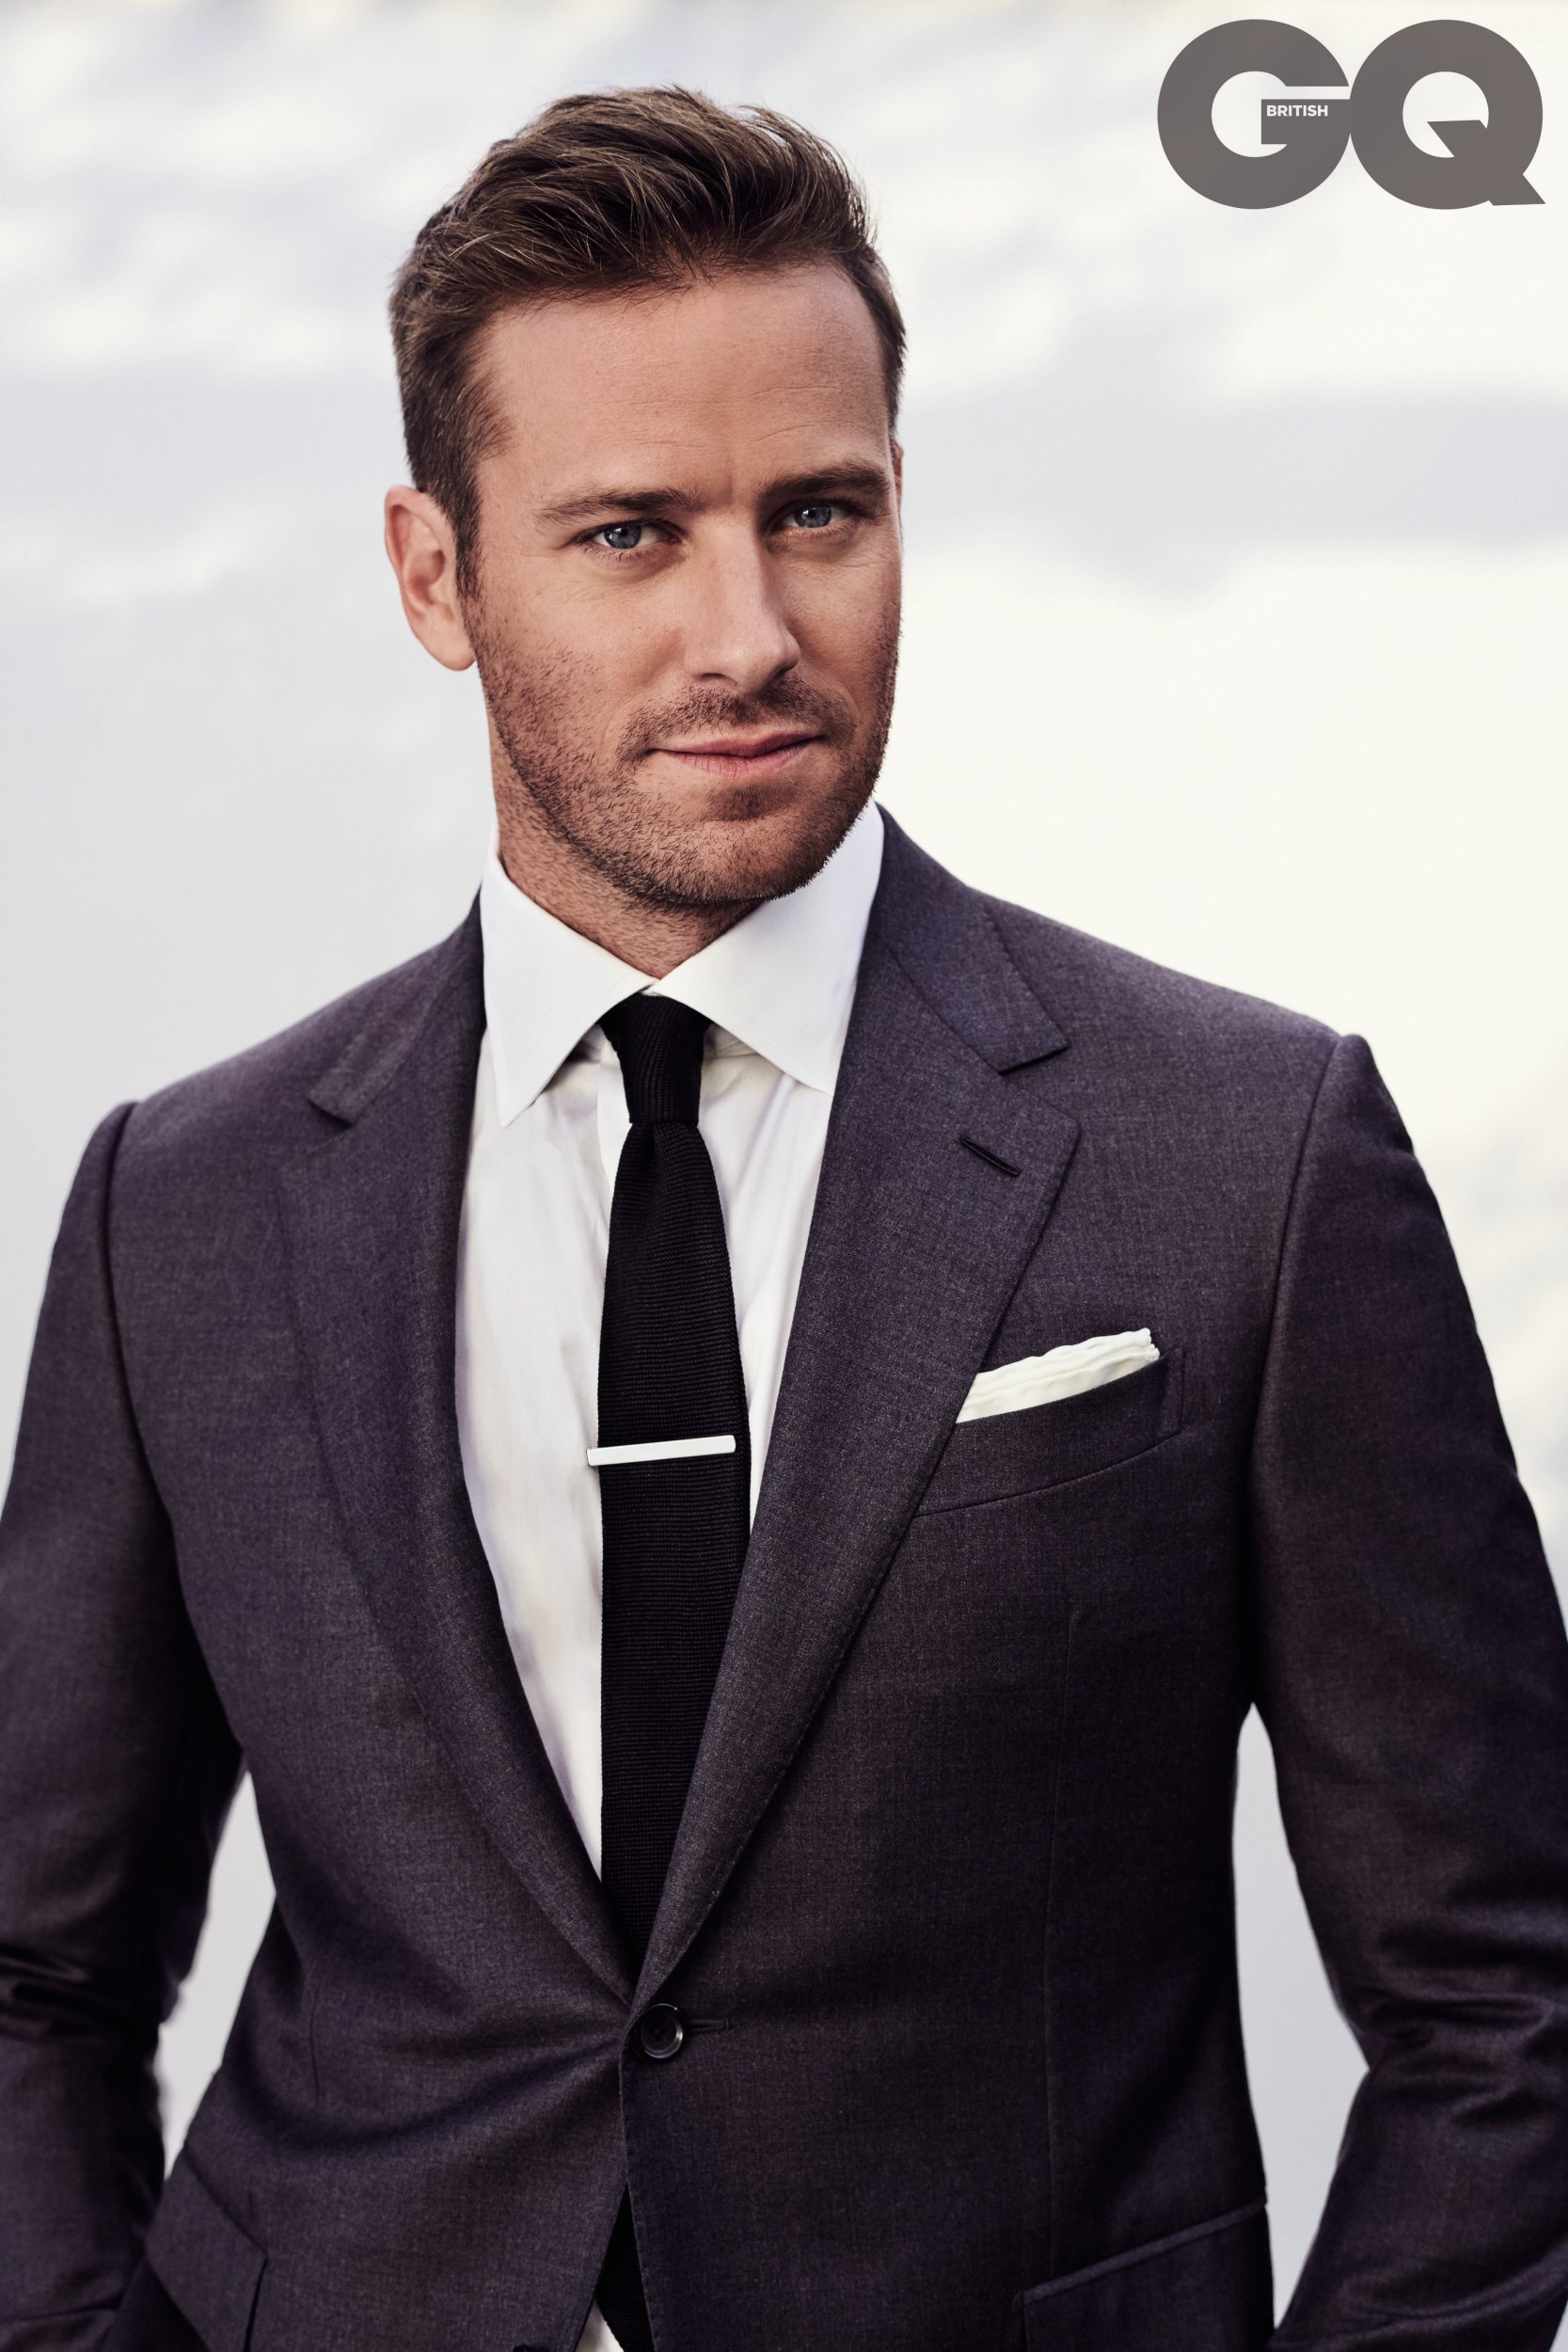 Armie Hammer acknowledges white privilege helped career – but insists he's still put in the work